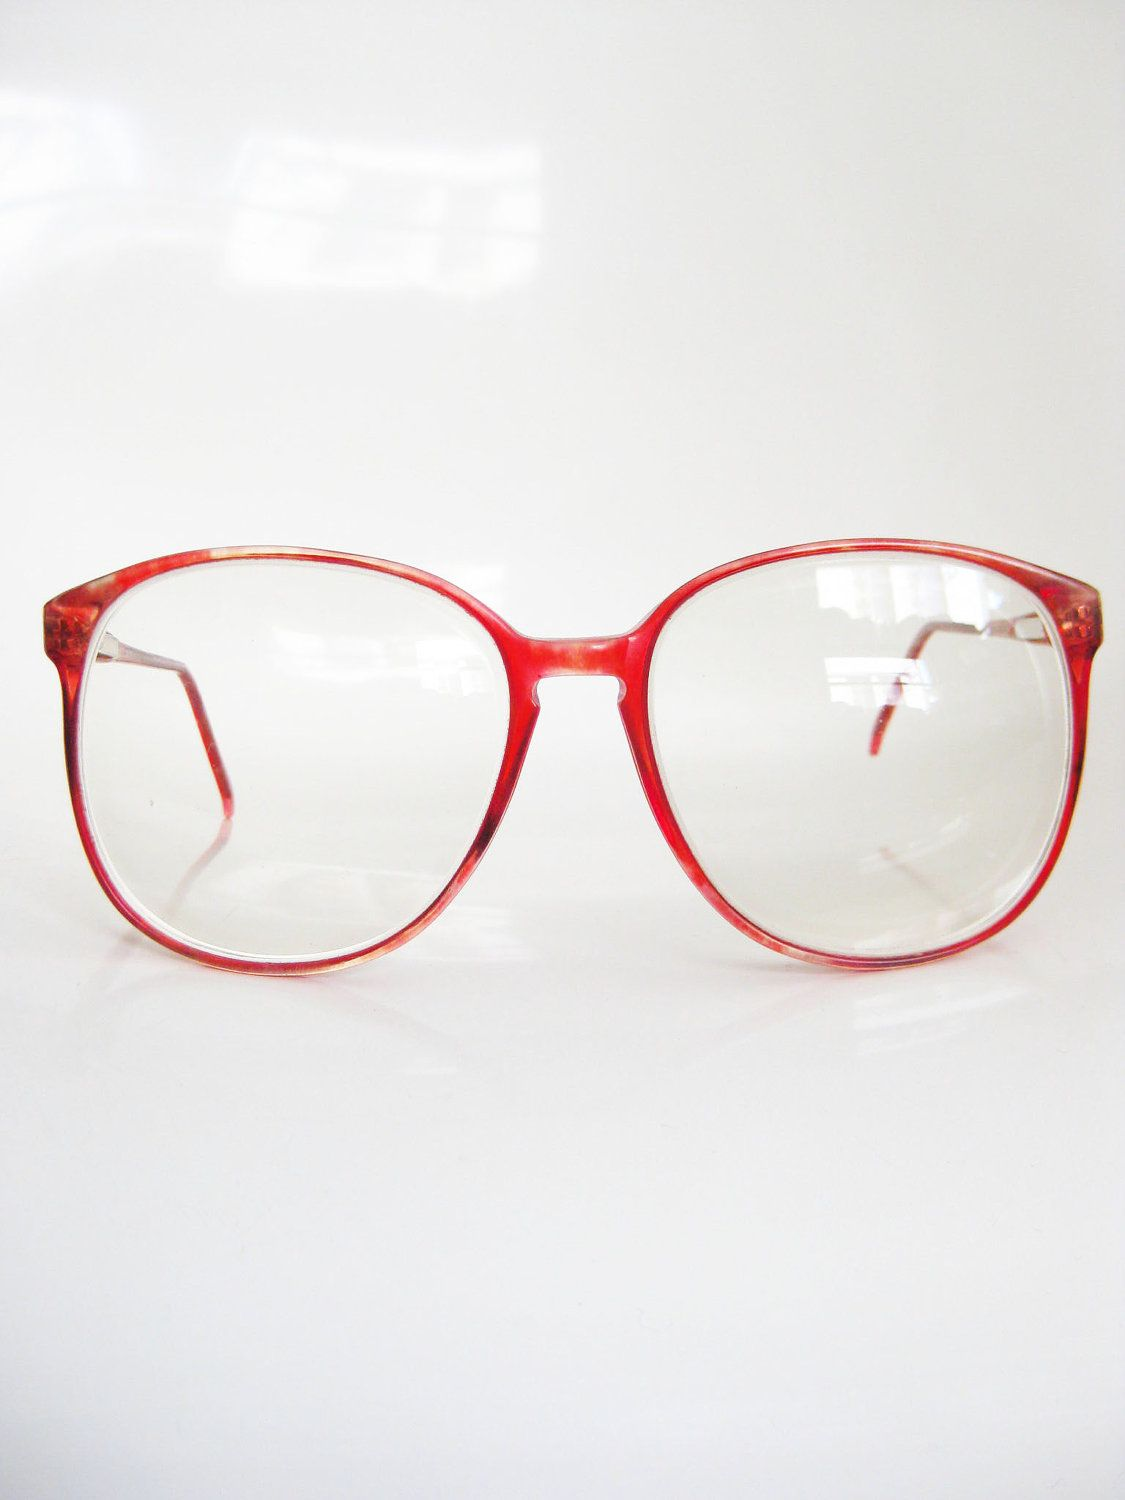 347d35acb9f Vintage CHERRY RED Glasses Eyeglasses ROUND by OliverandAlexa